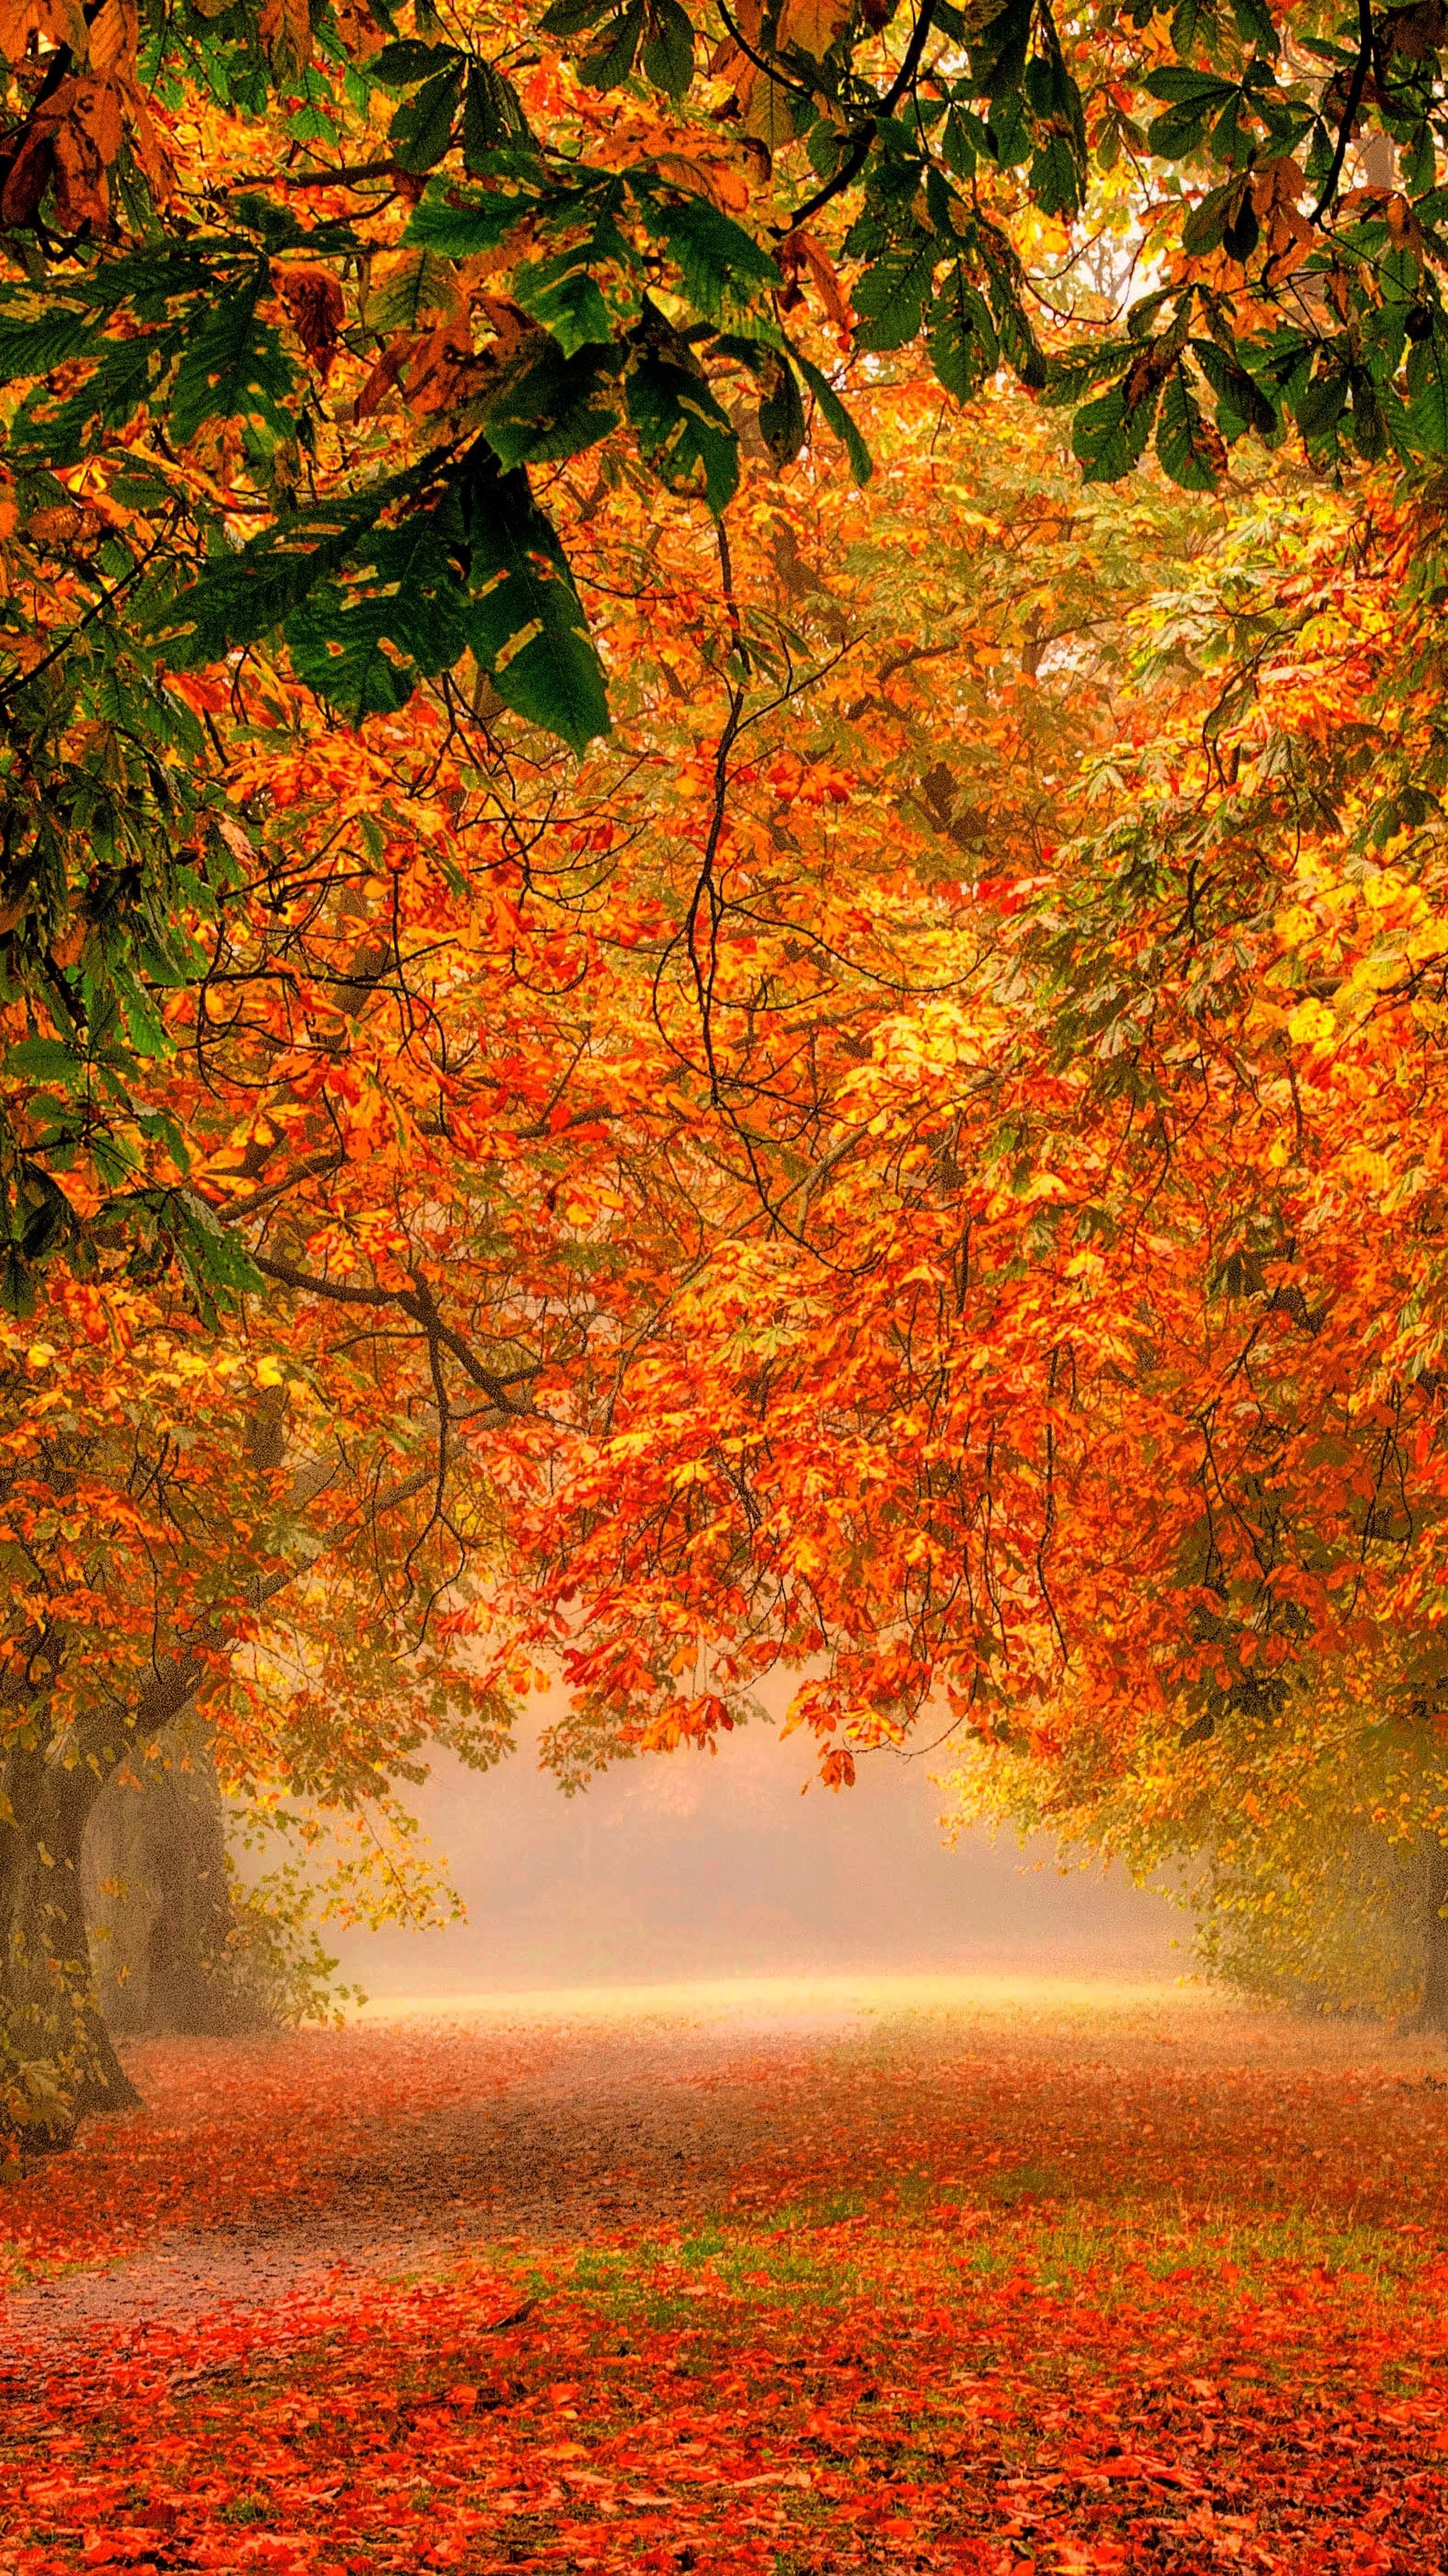 Fall Road Wallpaper Forest Nature Park Colorful Leaves Iphone Wallpaper